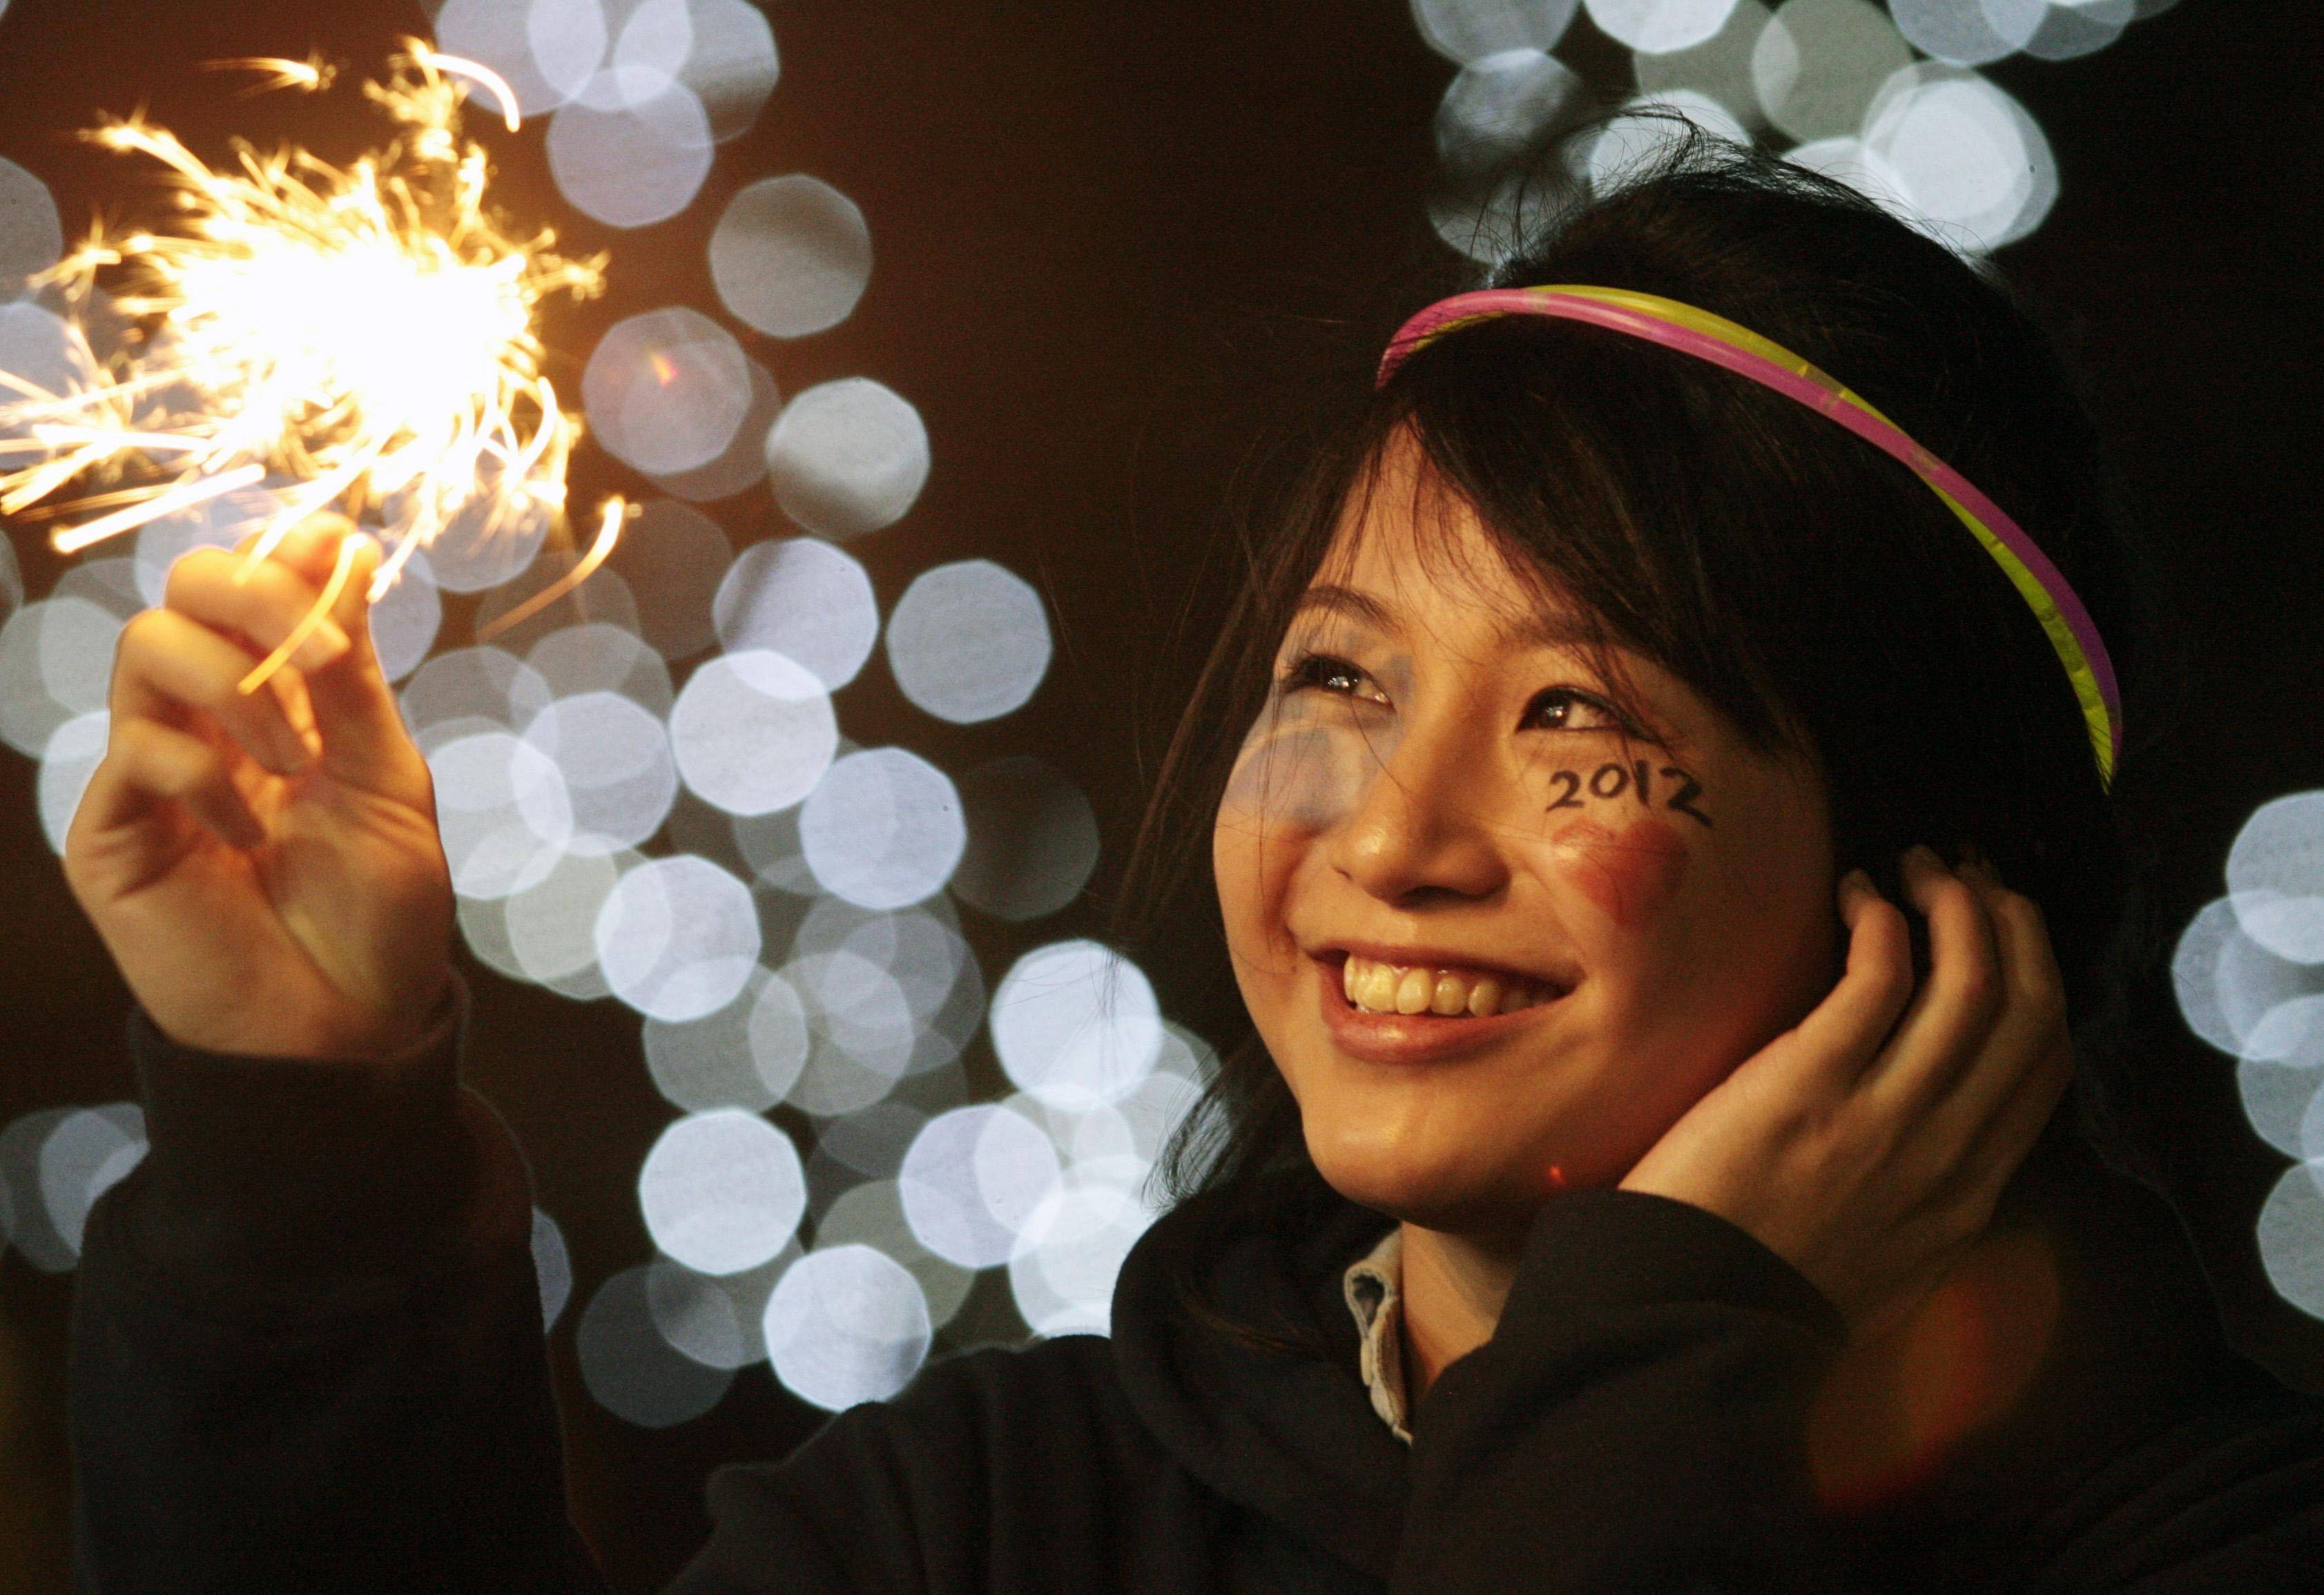 Jessica Ong from Singapore starts her new year celebrations early on New Year's Eve, at the Hogmanay street party on Princes Street, Edinburgh, Scotland, Saturday Dec. 31, 2011.